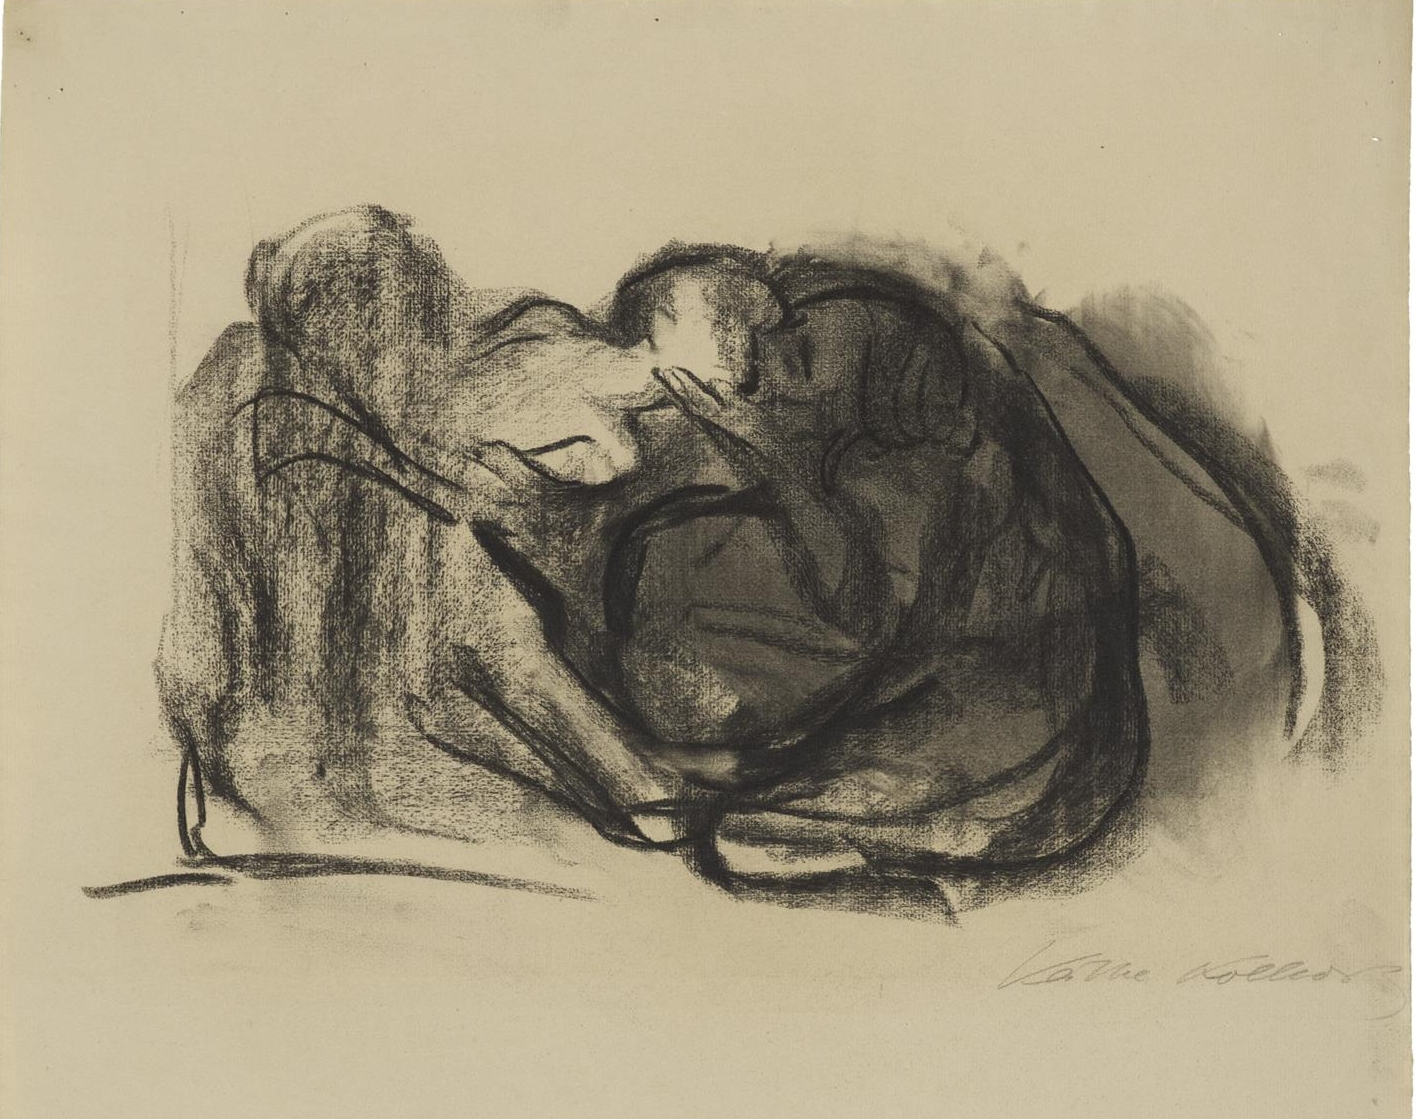 Käthe Kollwitz, Death snatching a Child from its Mother, 1911, charcoal, blotted, on Ingres paper, NT 634, Cologne Kollwitz Collection © Käthe Kollwitz Museum Köln